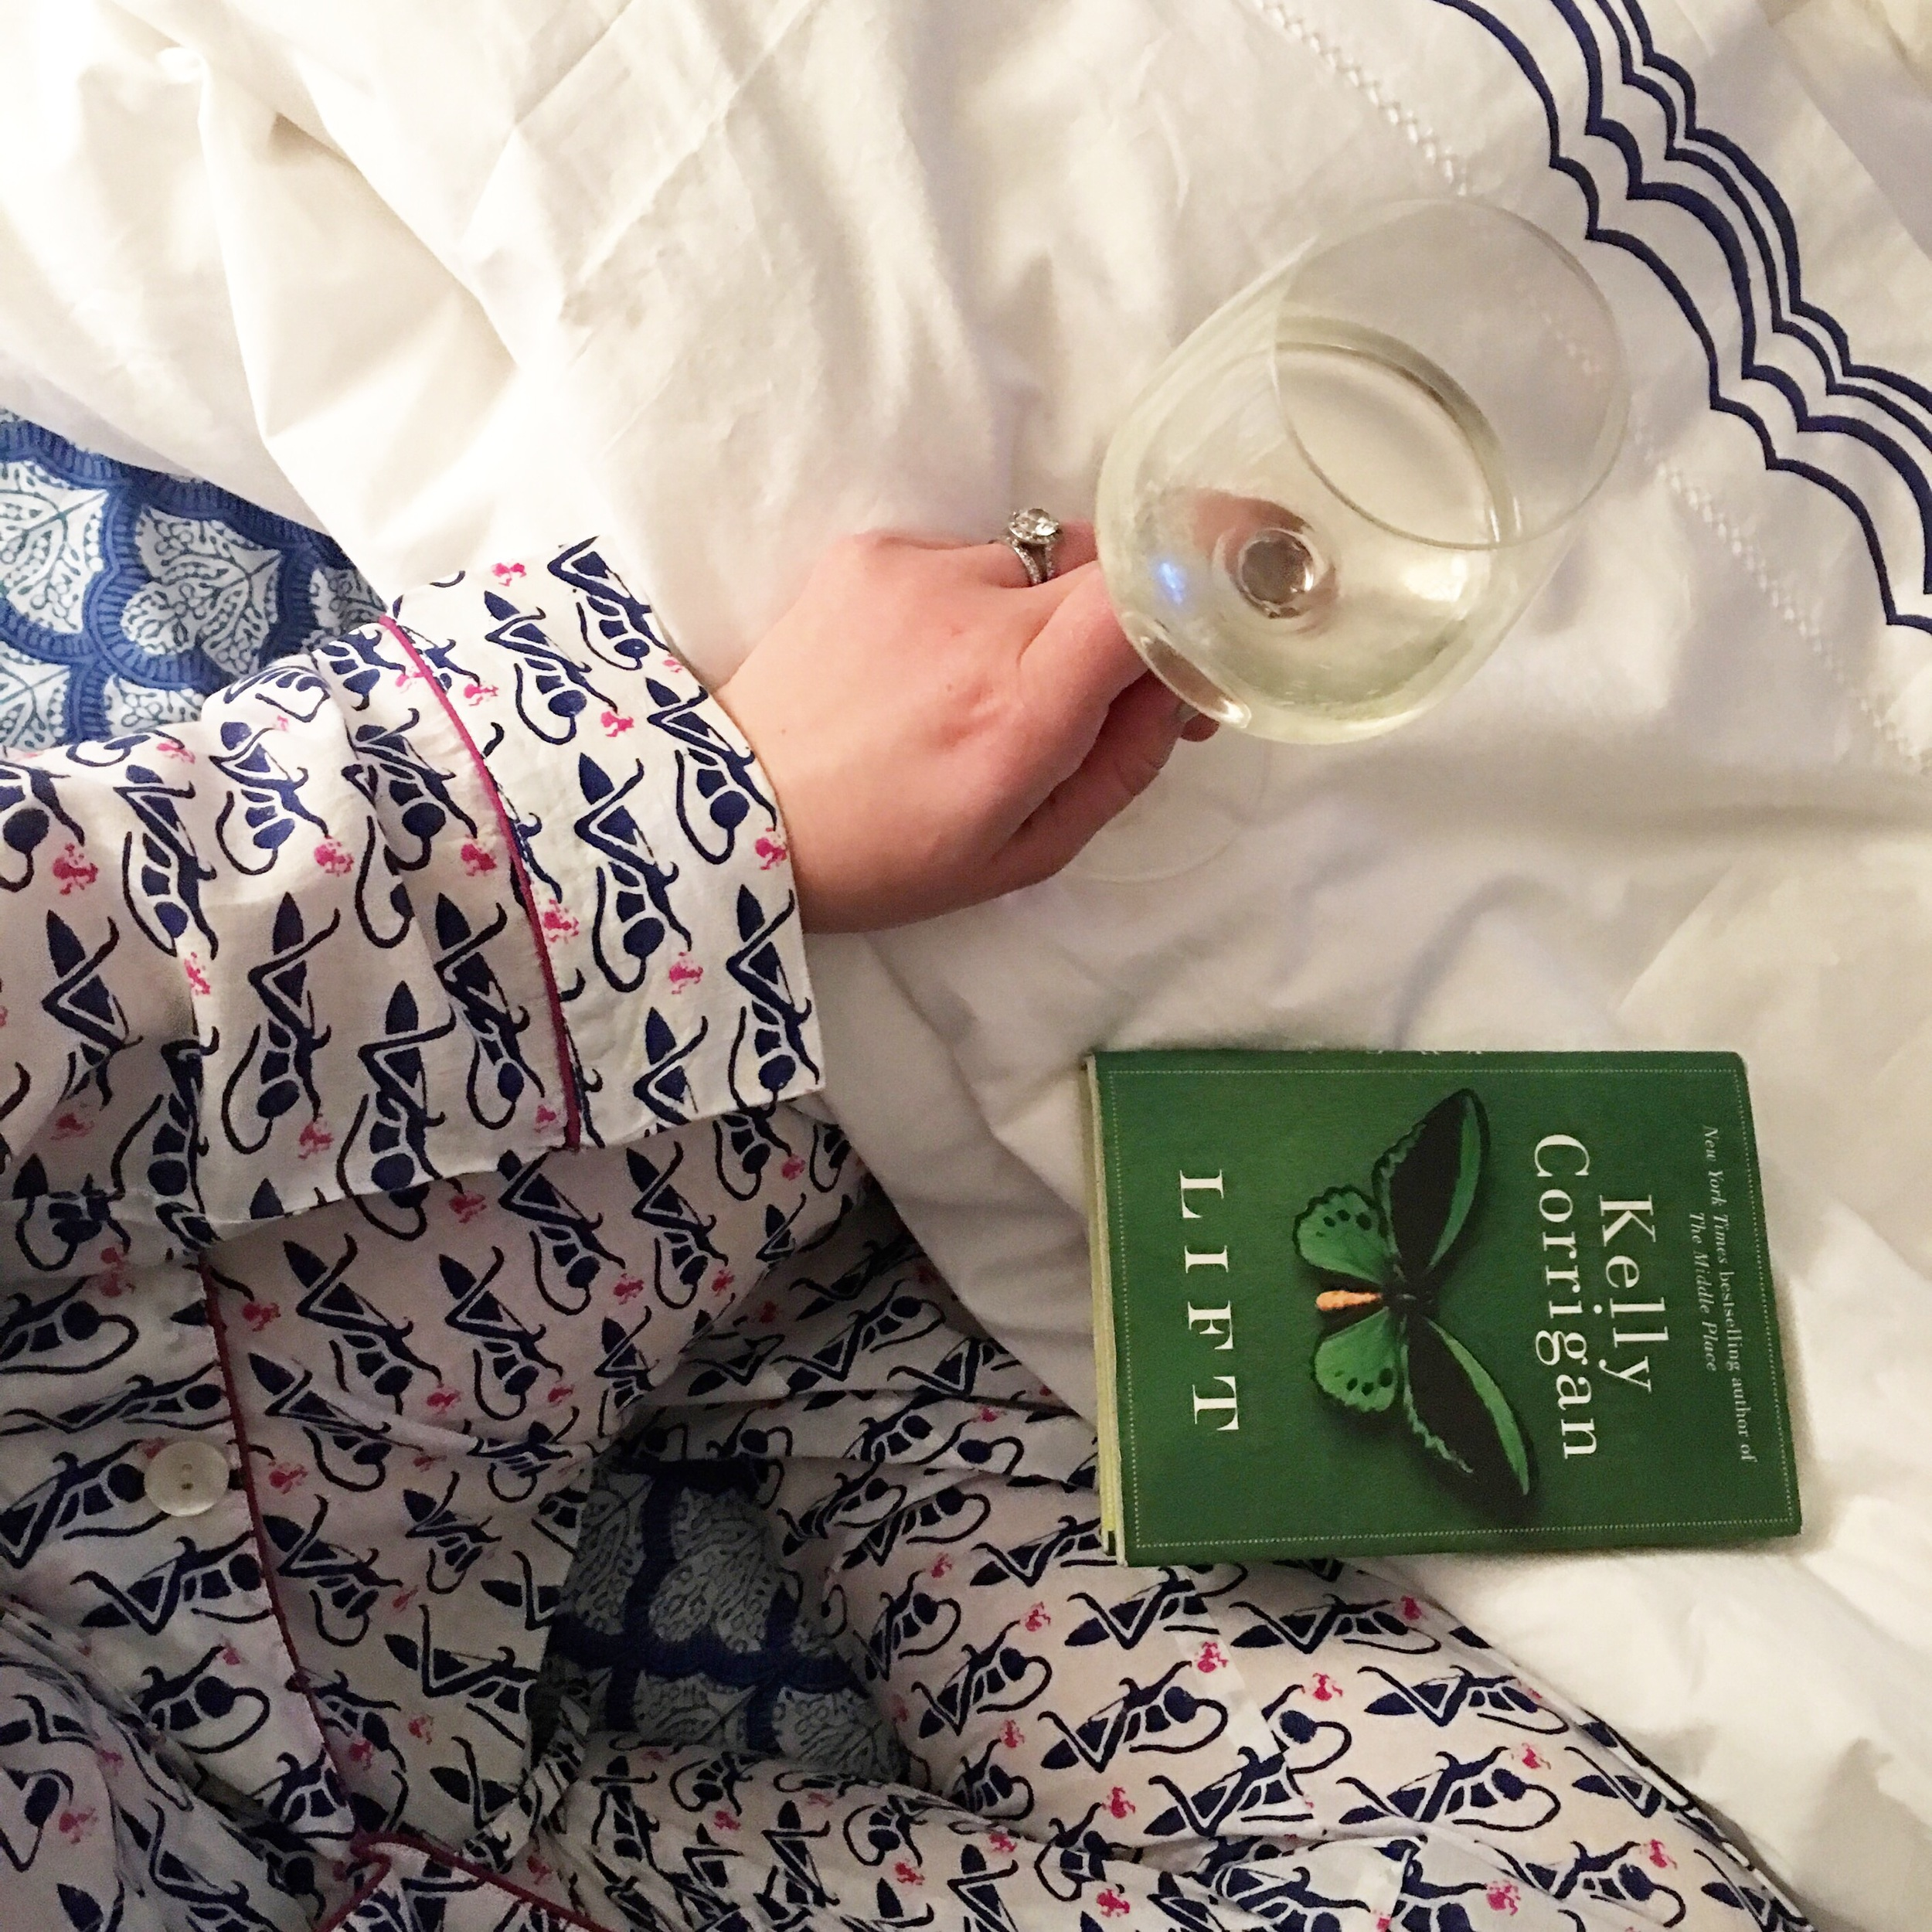 My comfy new Roberta Roller Rabbit PJs + sheets